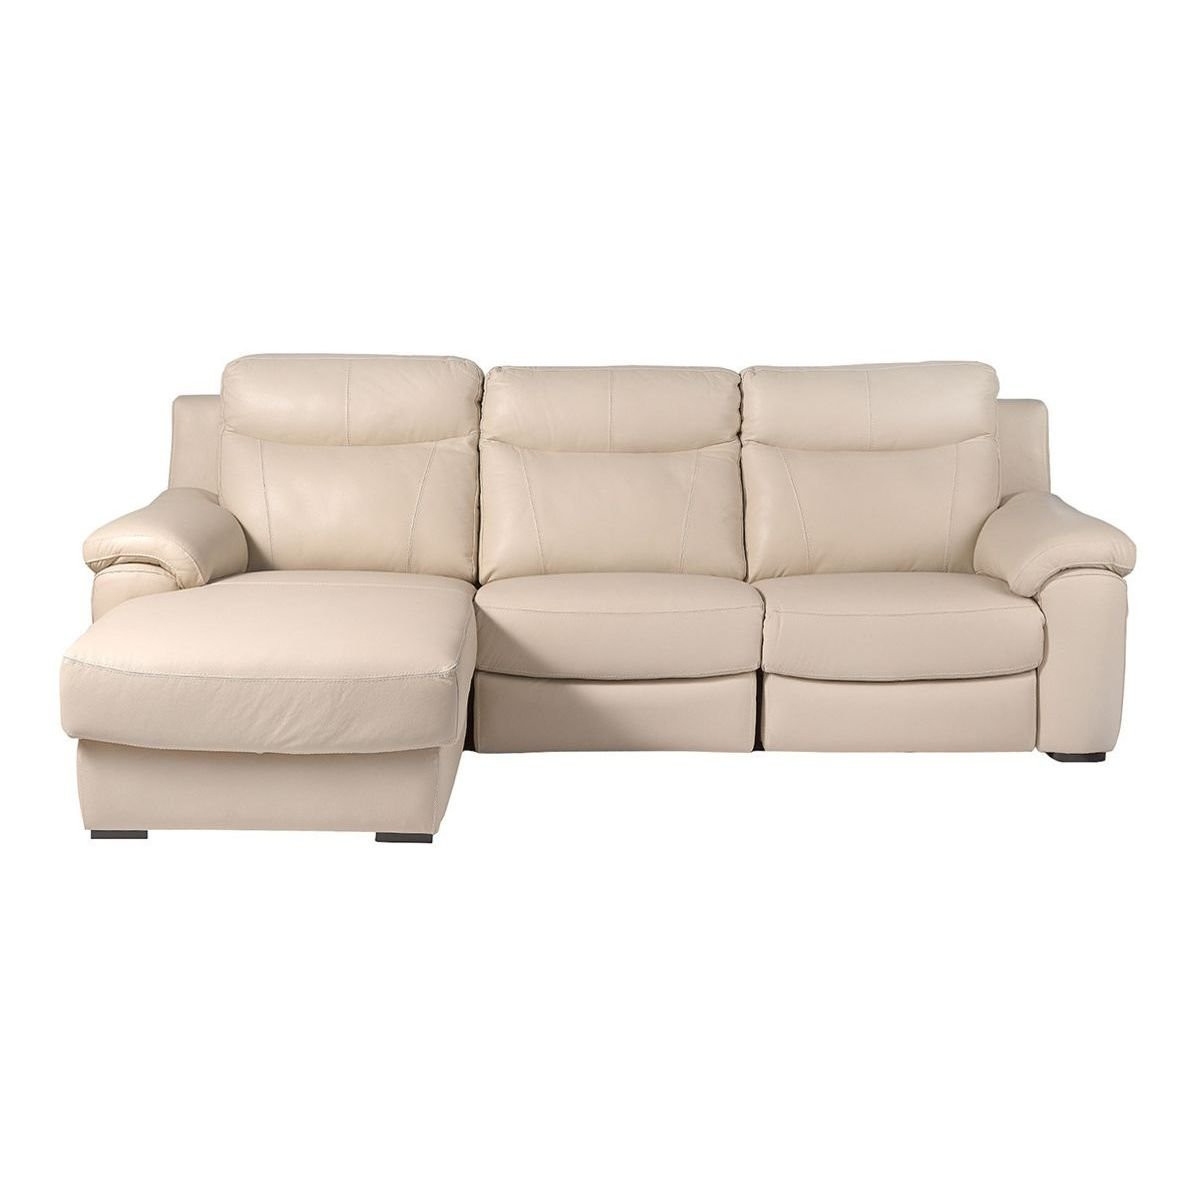 Oferta sofa Chaise Longue Fresco sofás Chaise Longue El Corte Inglés Of 41  Encantador Oferta sofa Chaise Longue